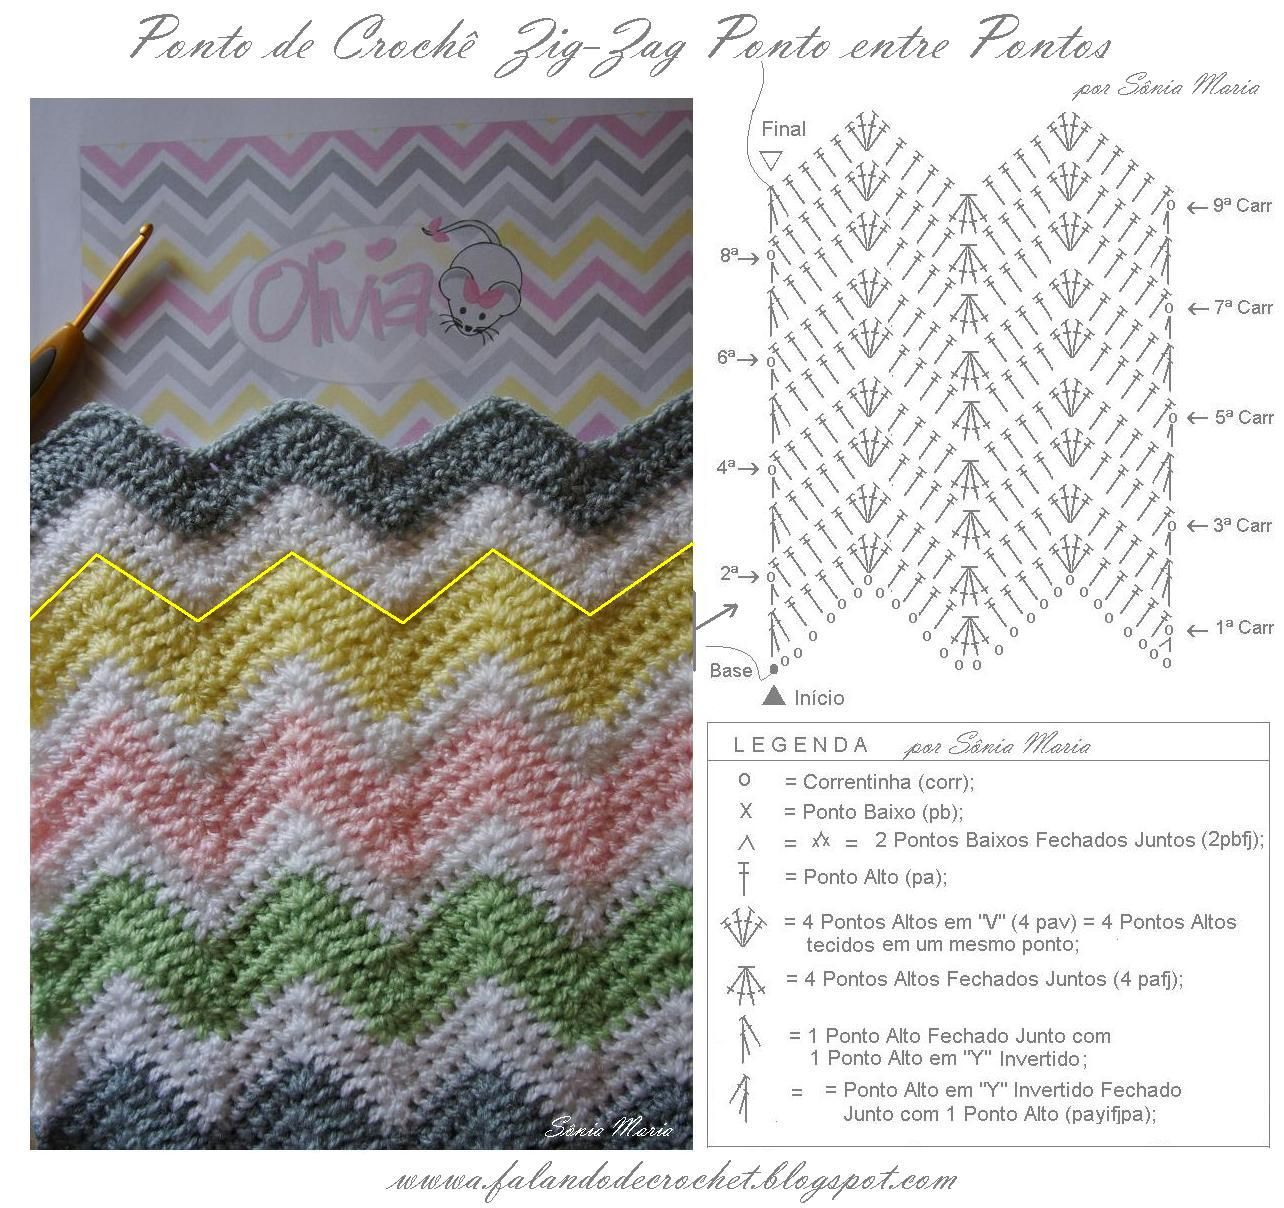 Pin by Janete Gutierrez on tejido | Pinterest | Crochet, Knitting ...